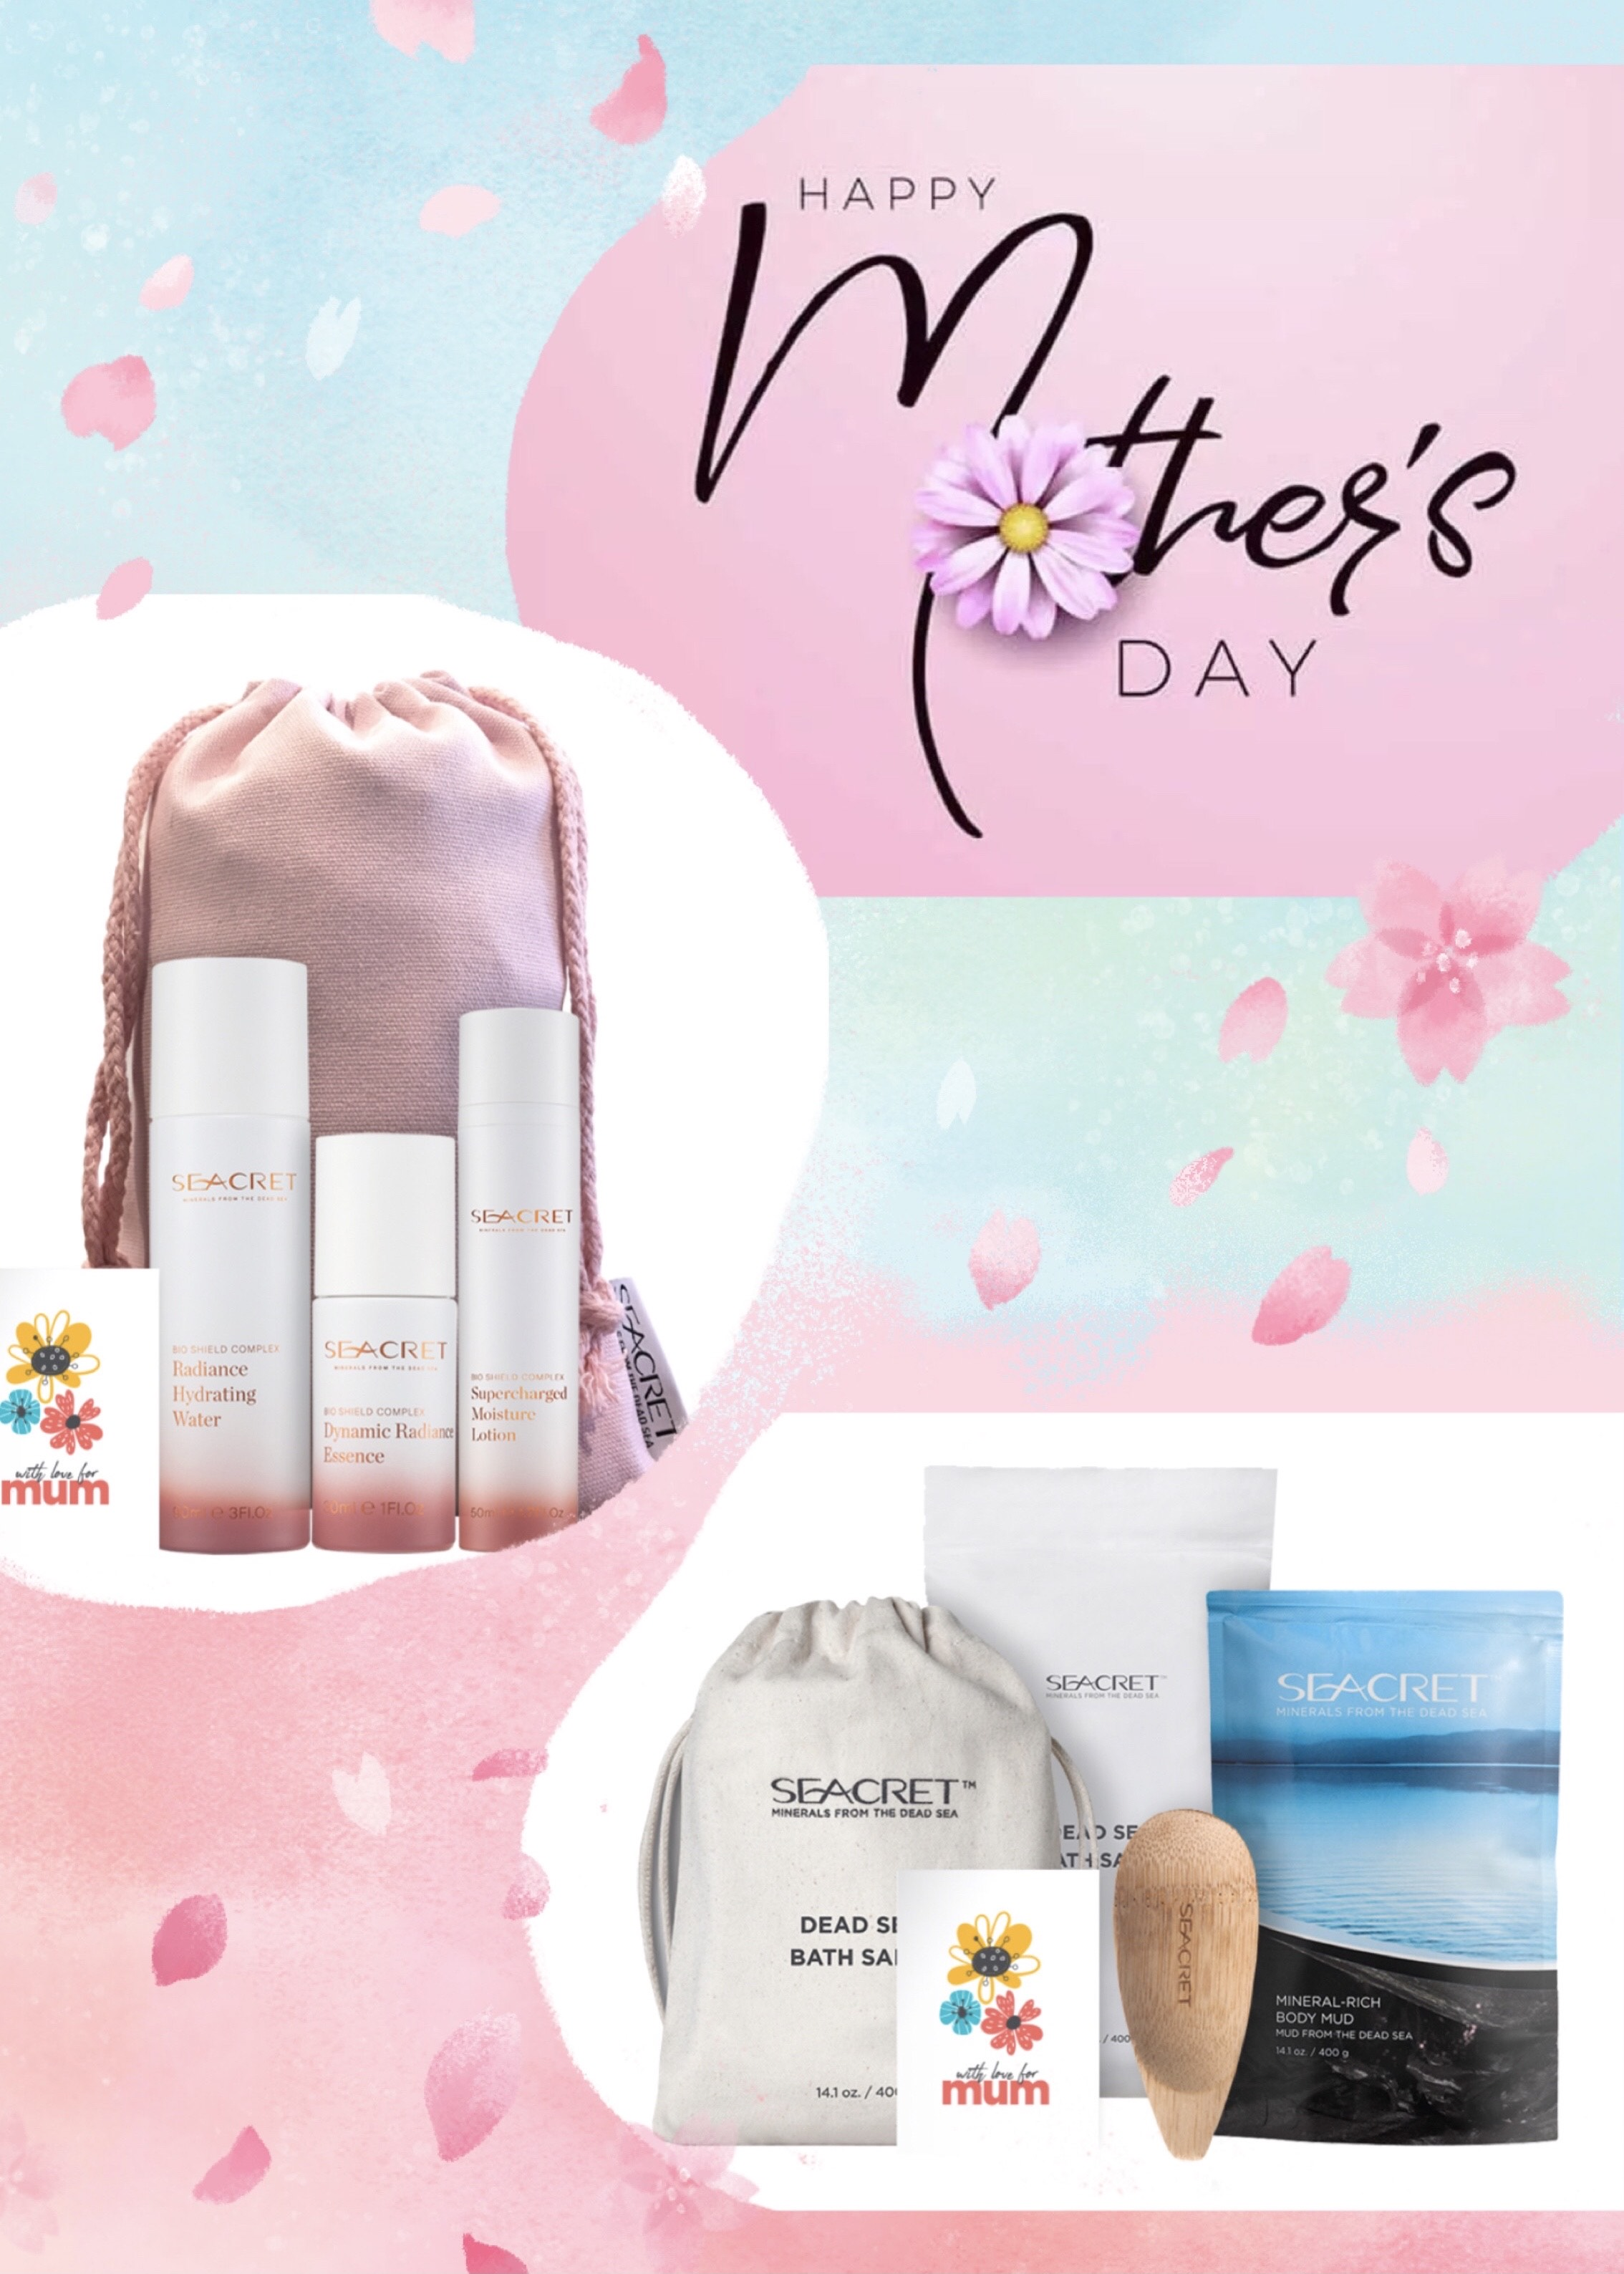 mother's day gifts idea from the Dead Sea